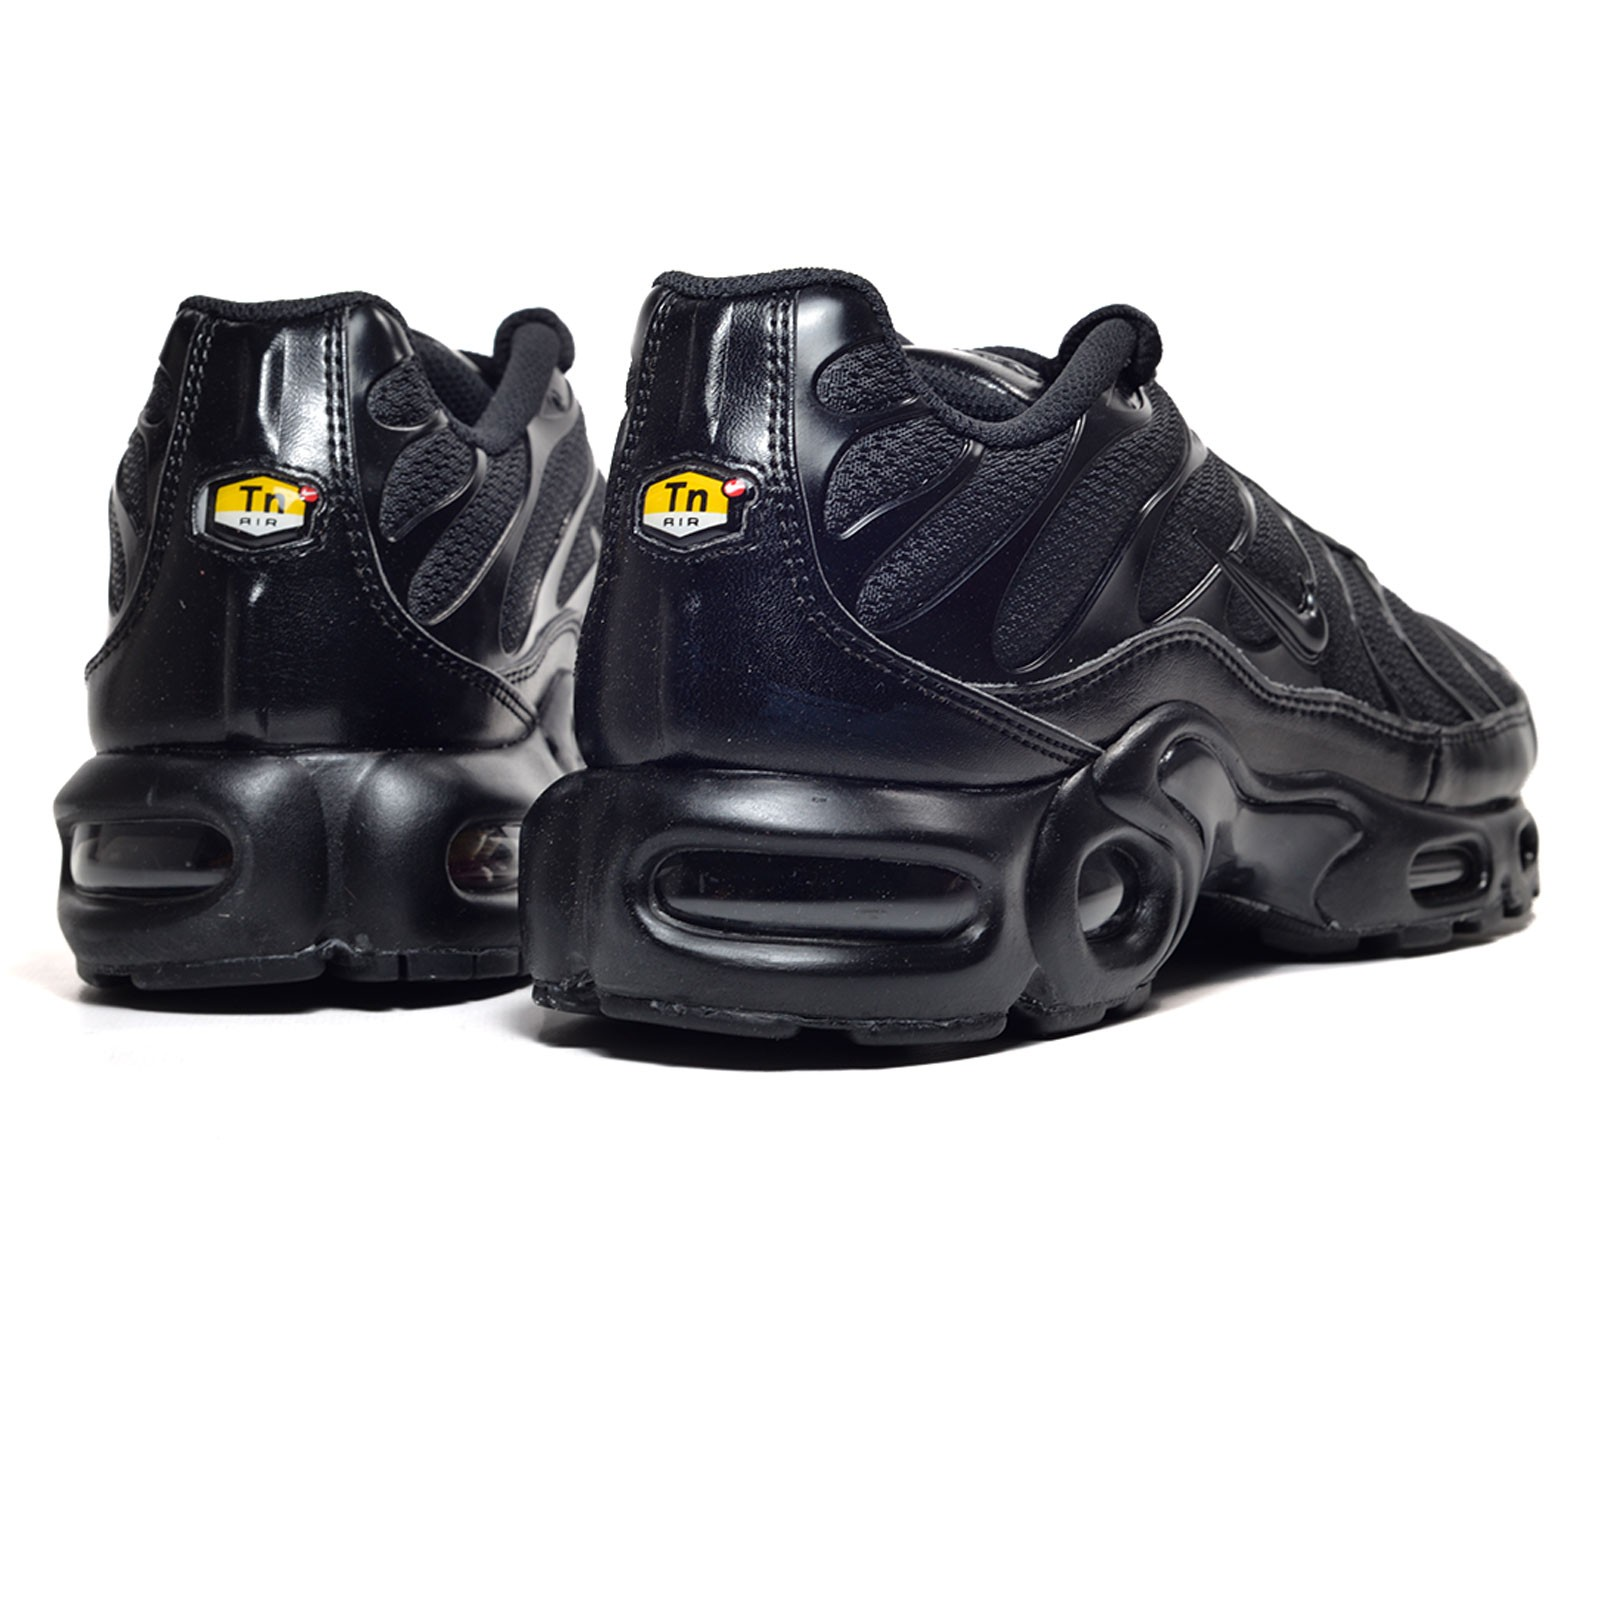 promo code 4fc24 cfaf2 Nike Air Max Plus Tn Triple black 604133-050